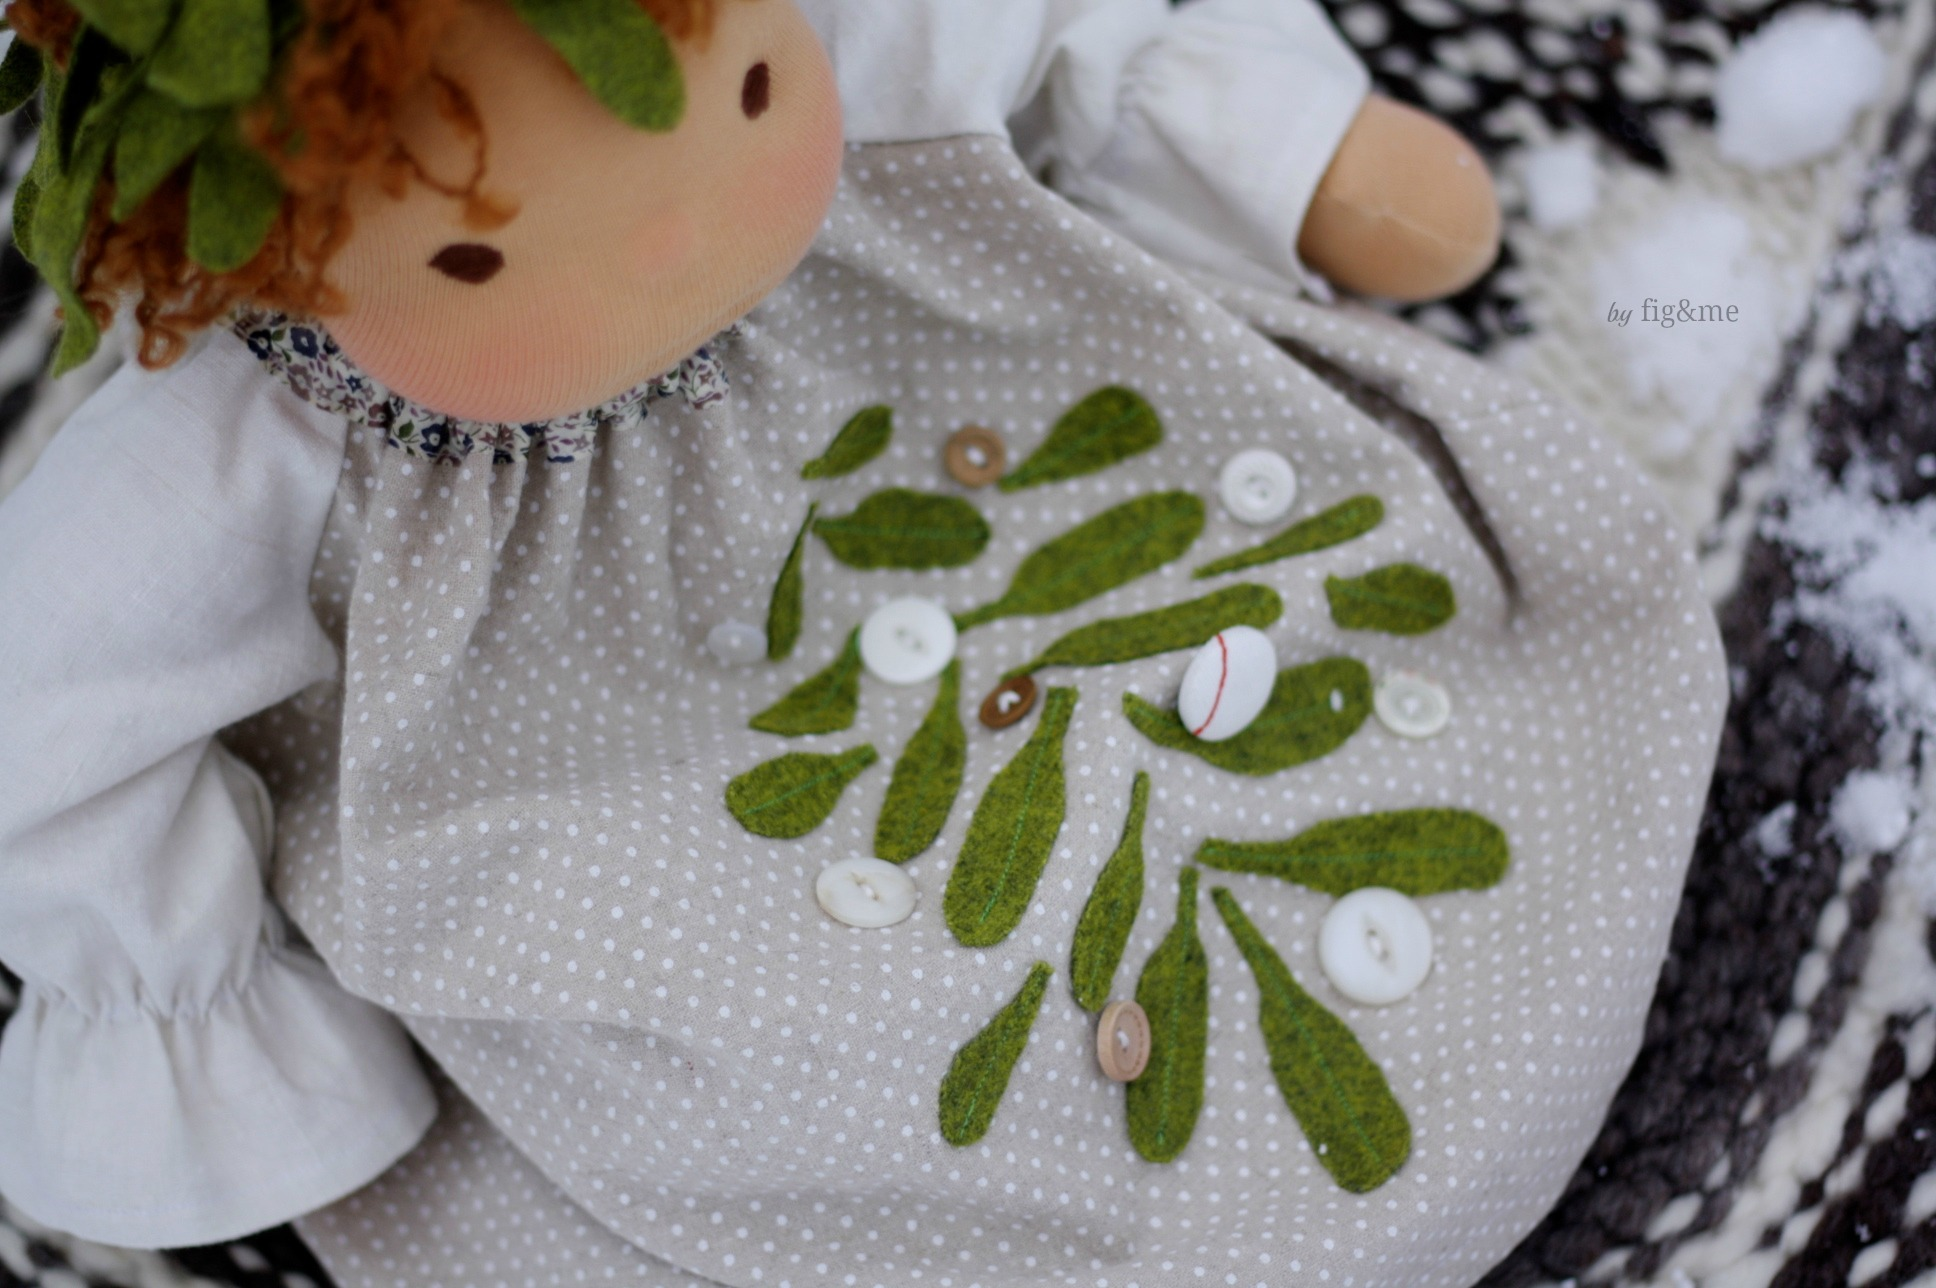 Mistletoe dress by Fig and me.